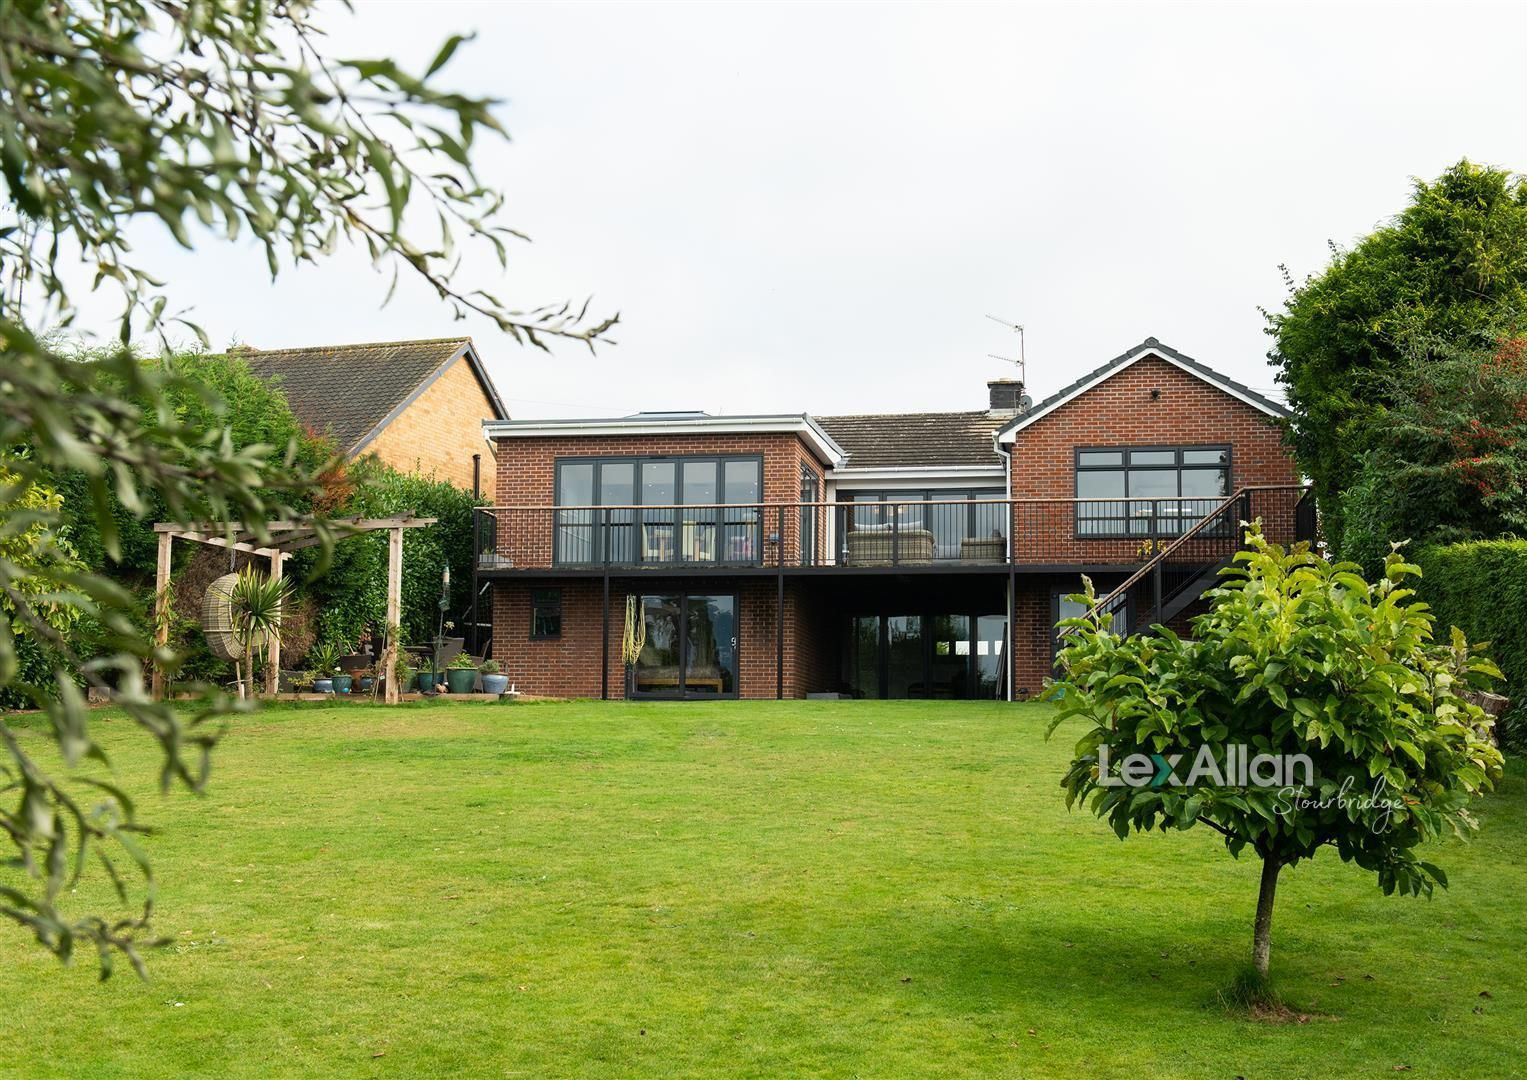 5 bed house for sale in Kinver, DY7